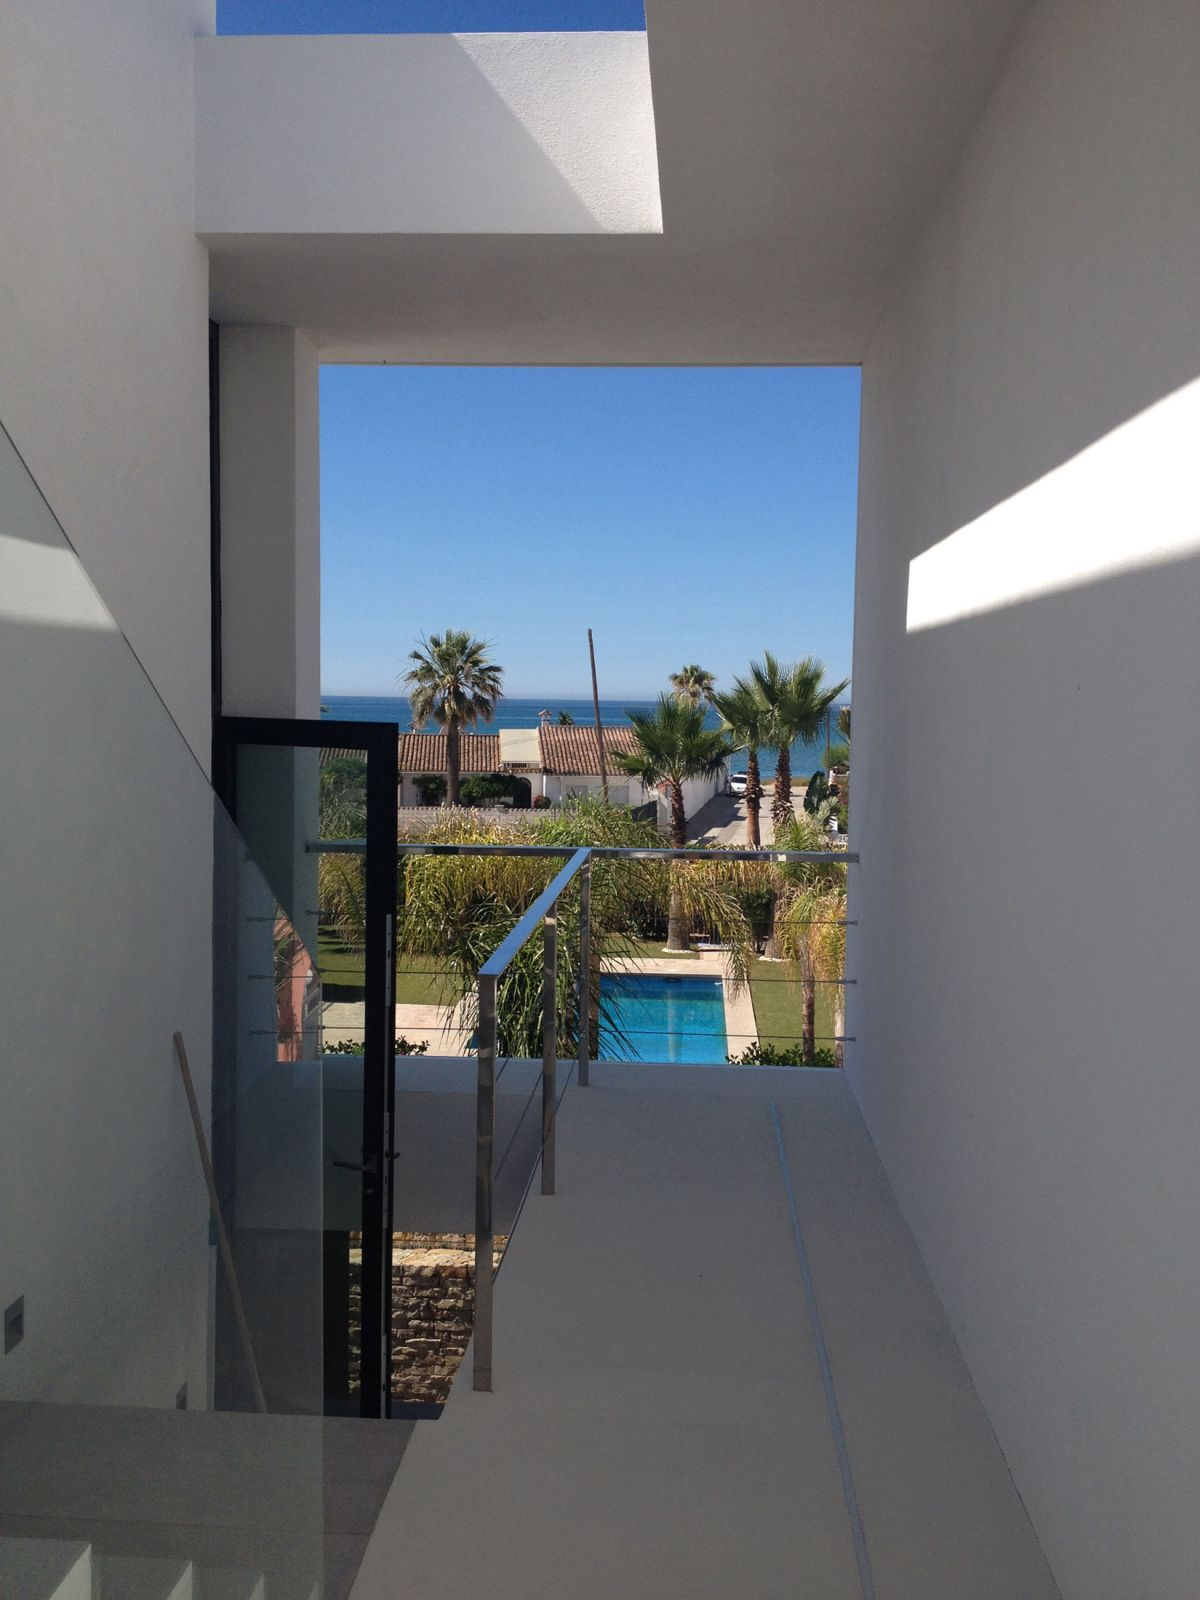 The Cool Blue Villa views from the staircase